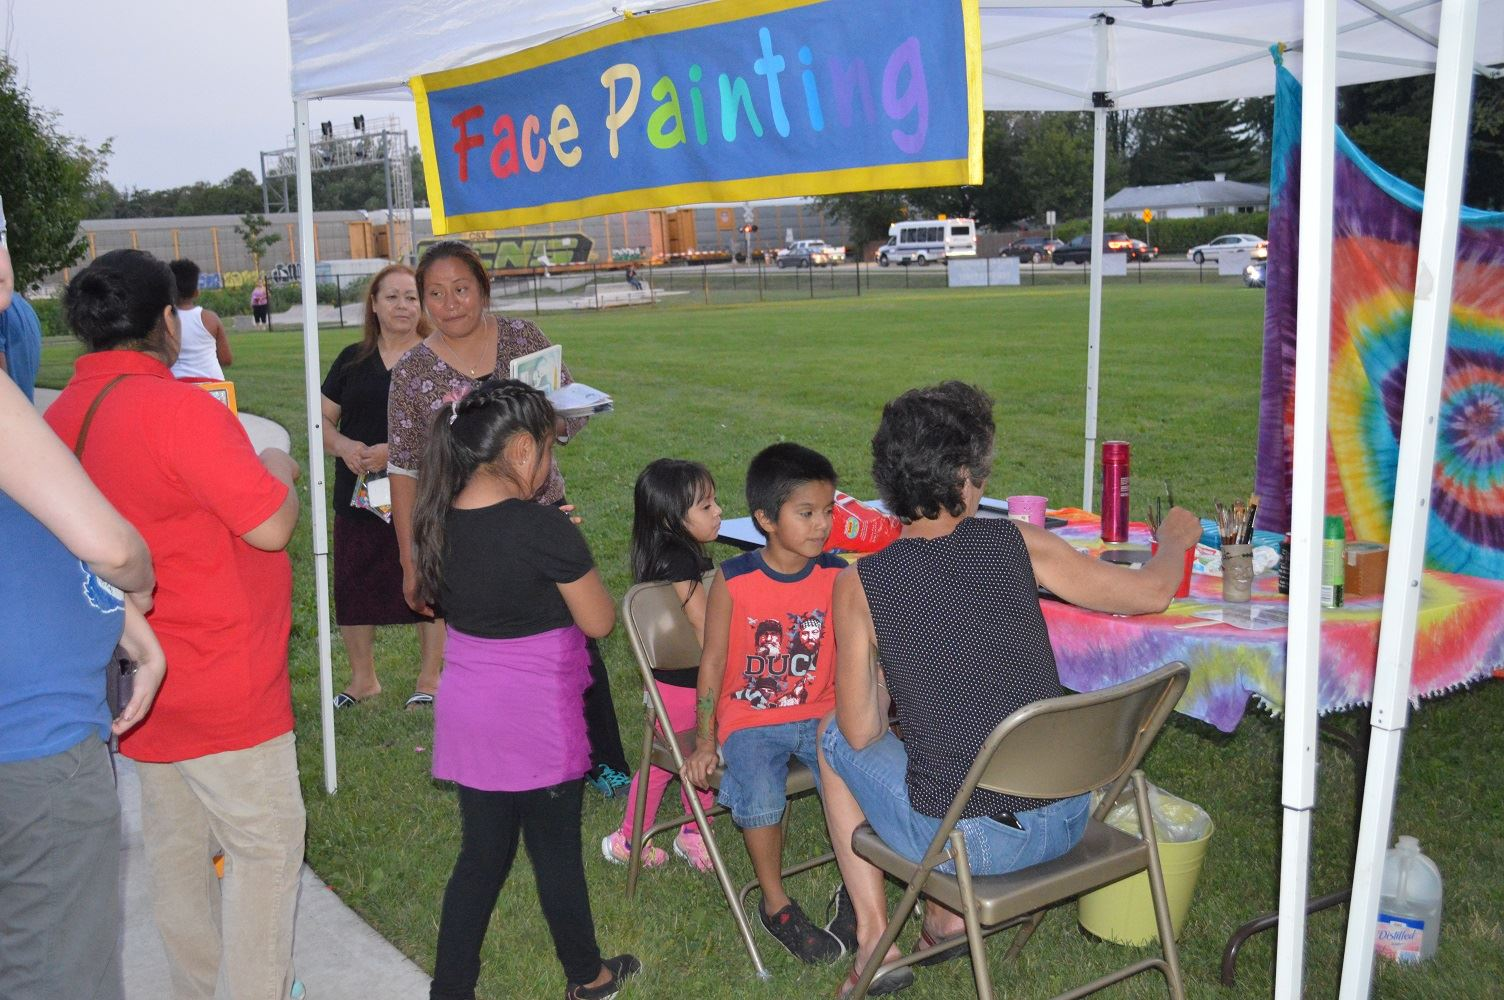 Kids line up to get their faces and arms painted during a National Night Out event at the Iowa Community Center, Aug. 2.